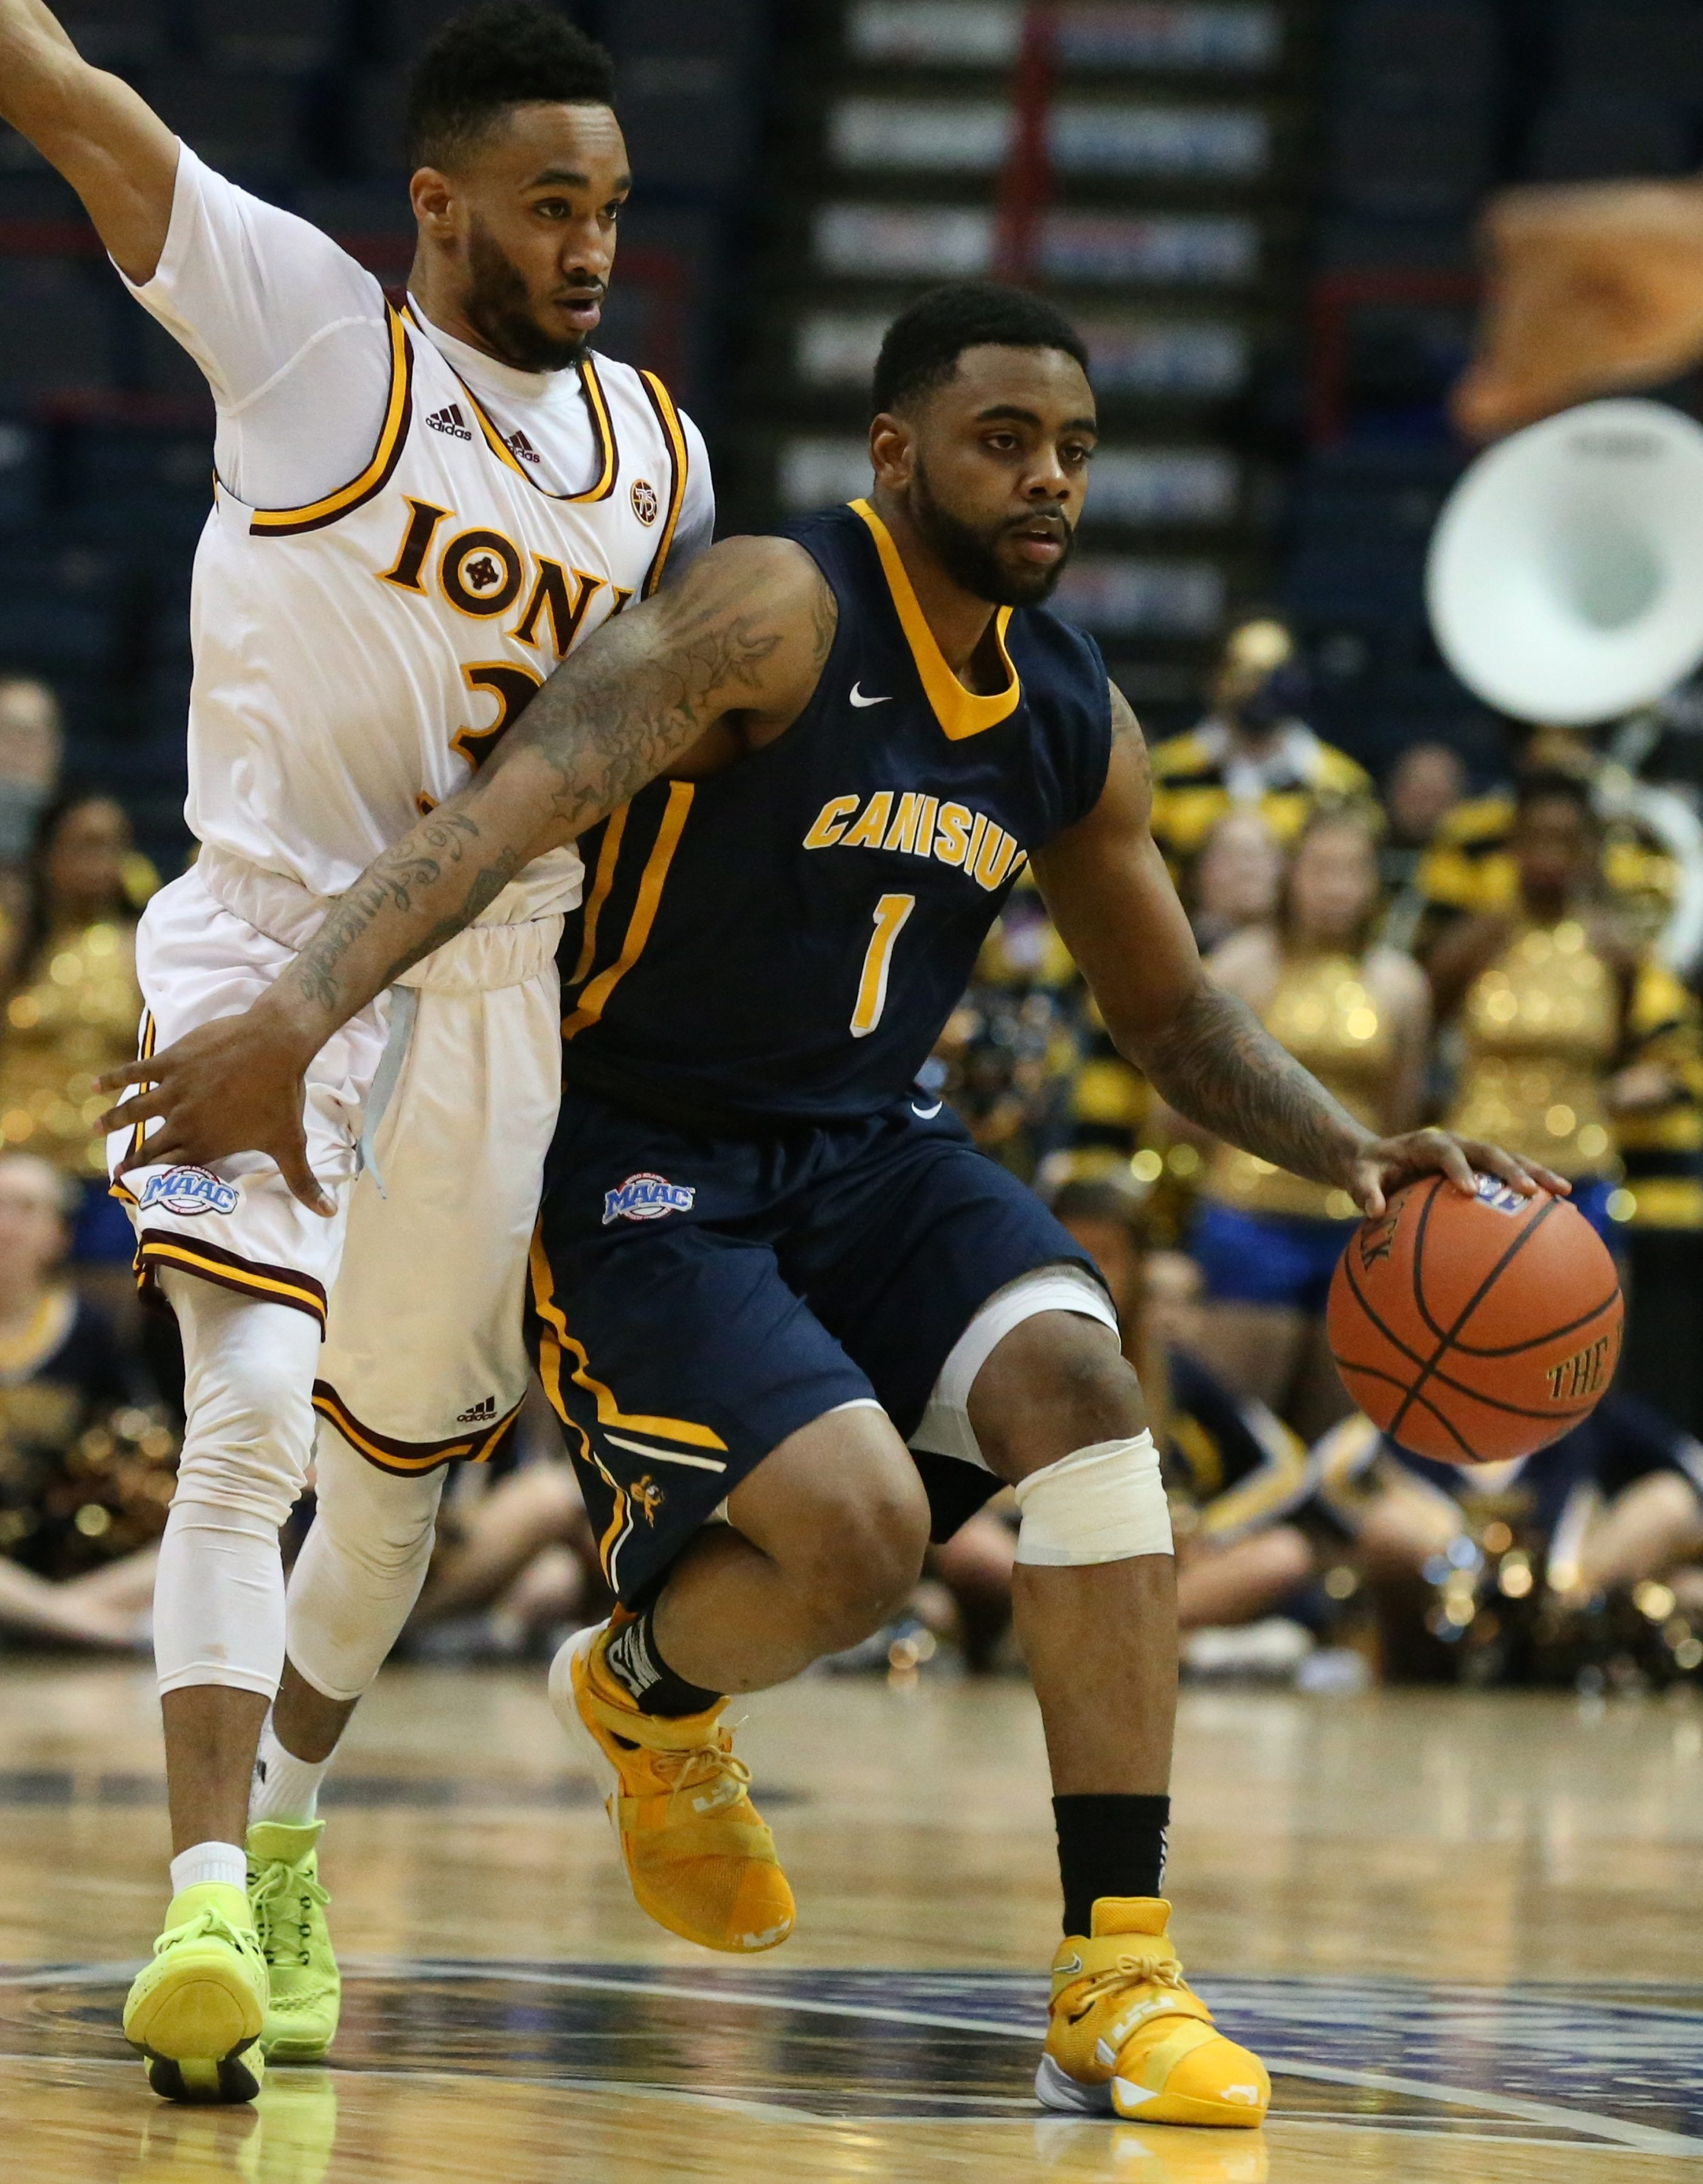 Canisius Golden Griffins guard Malcolm McMillan (1) brings the ball up the court in front of Iona Gaels guard Ibn Muhammad (3) in the first half of the men's quarterfinal game in the MAAC Championship at the Times Union Center in Albany,NY on Friday, March 4, 2016.  ()